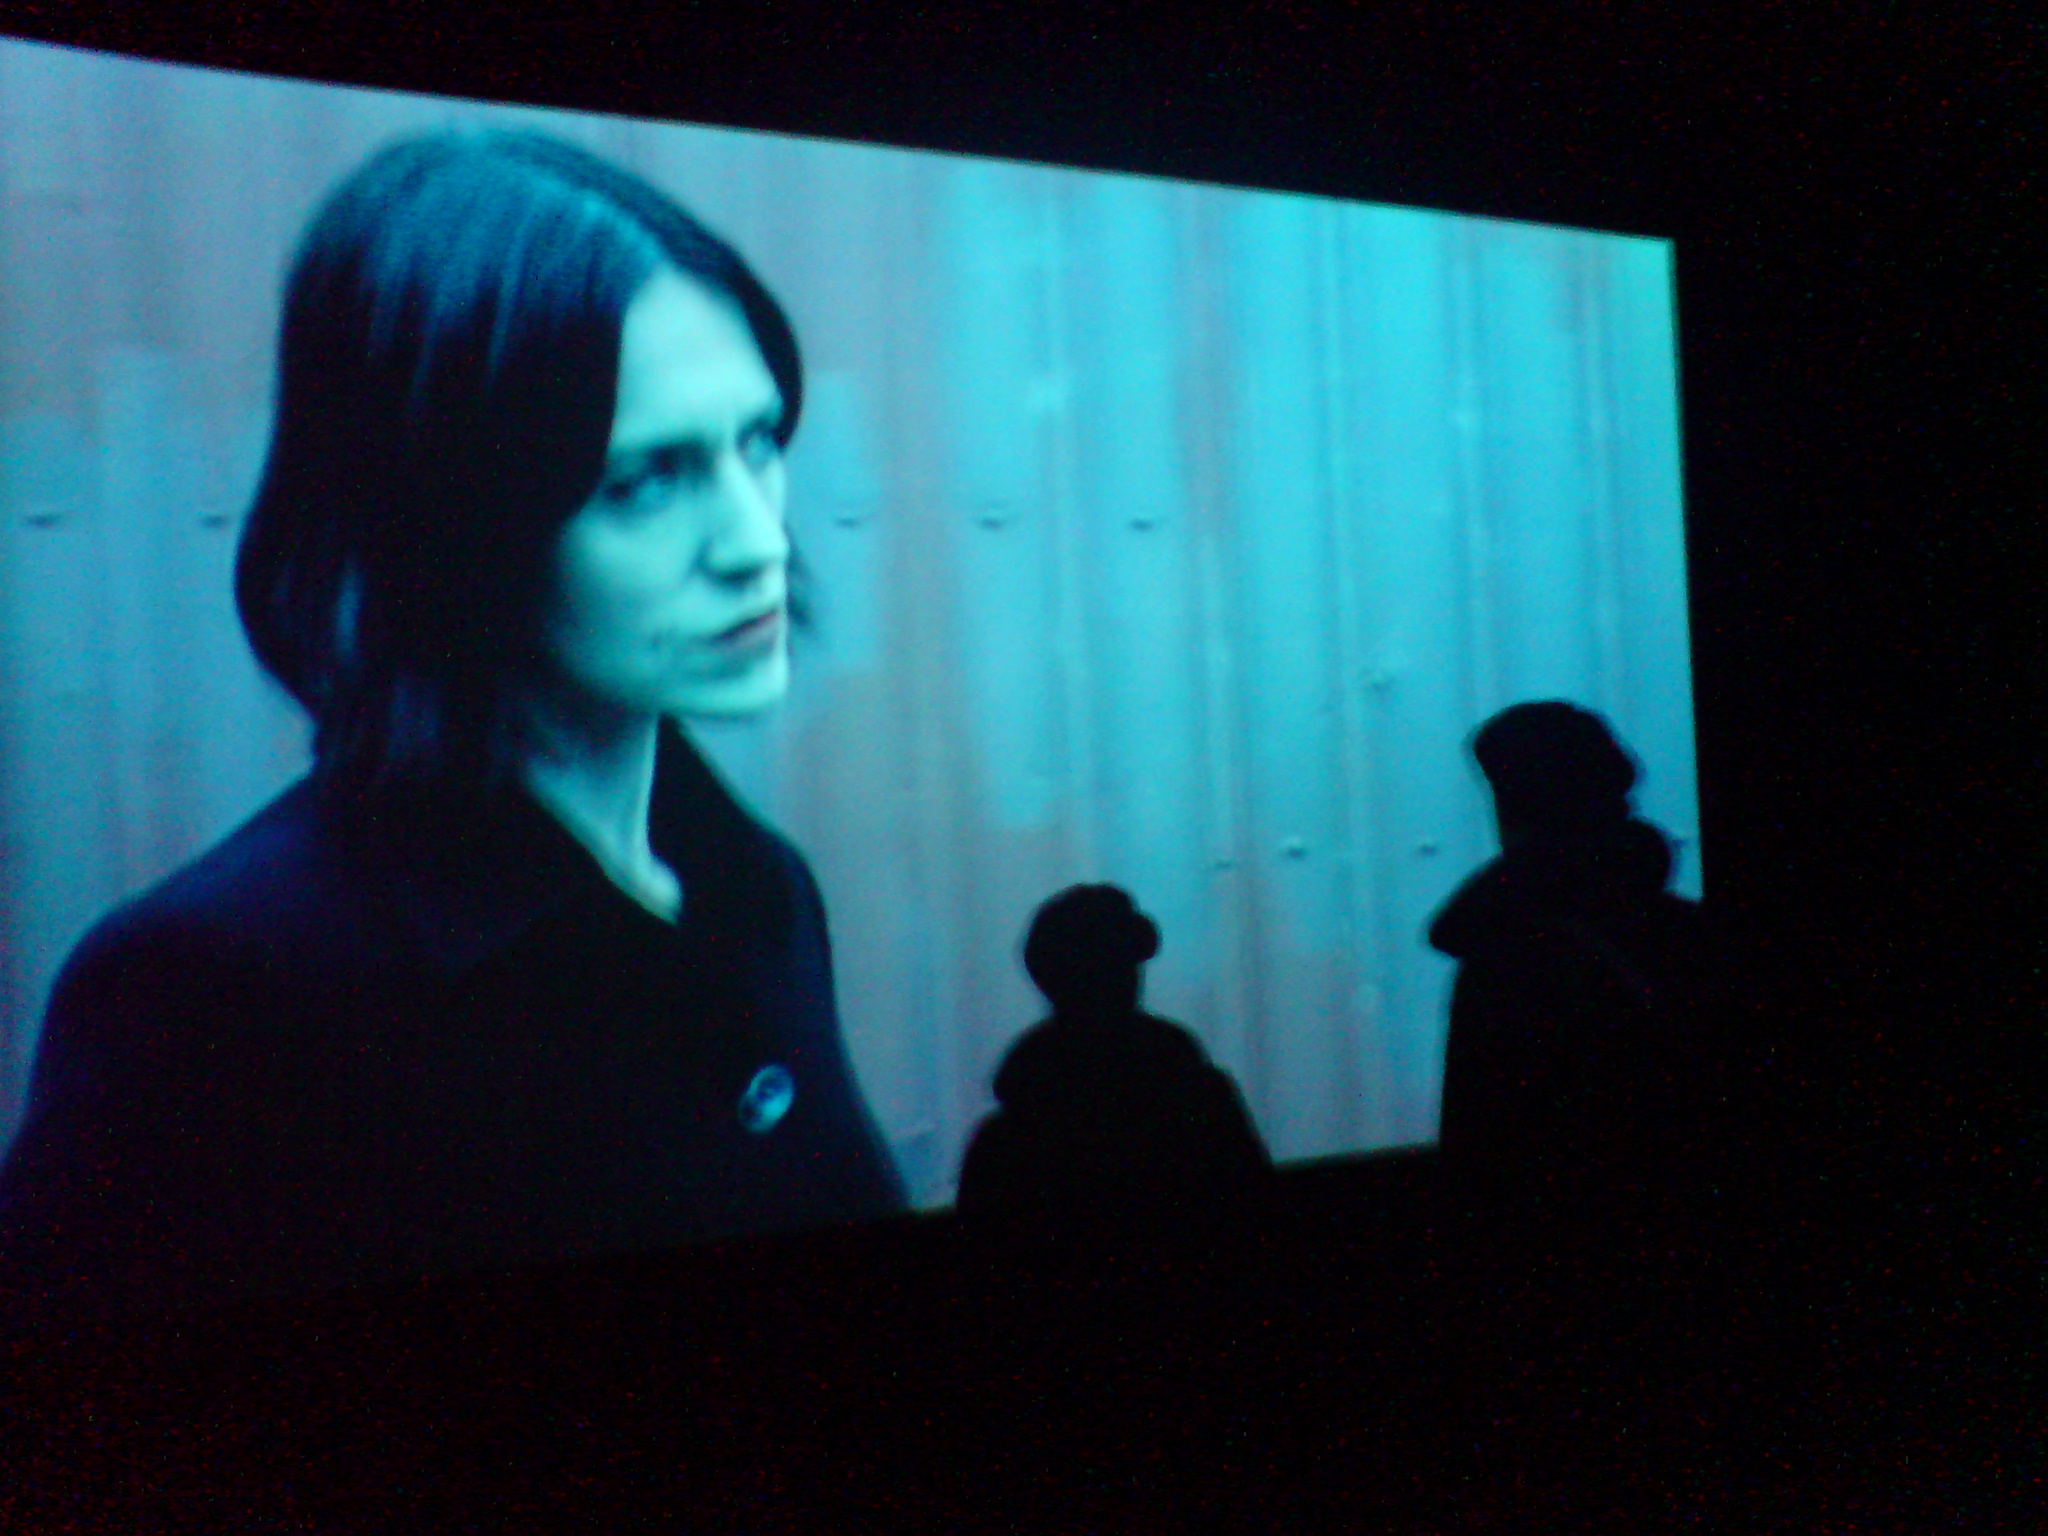 me doubled in front of a video by willie doherty, Foto by Antonio Guidi